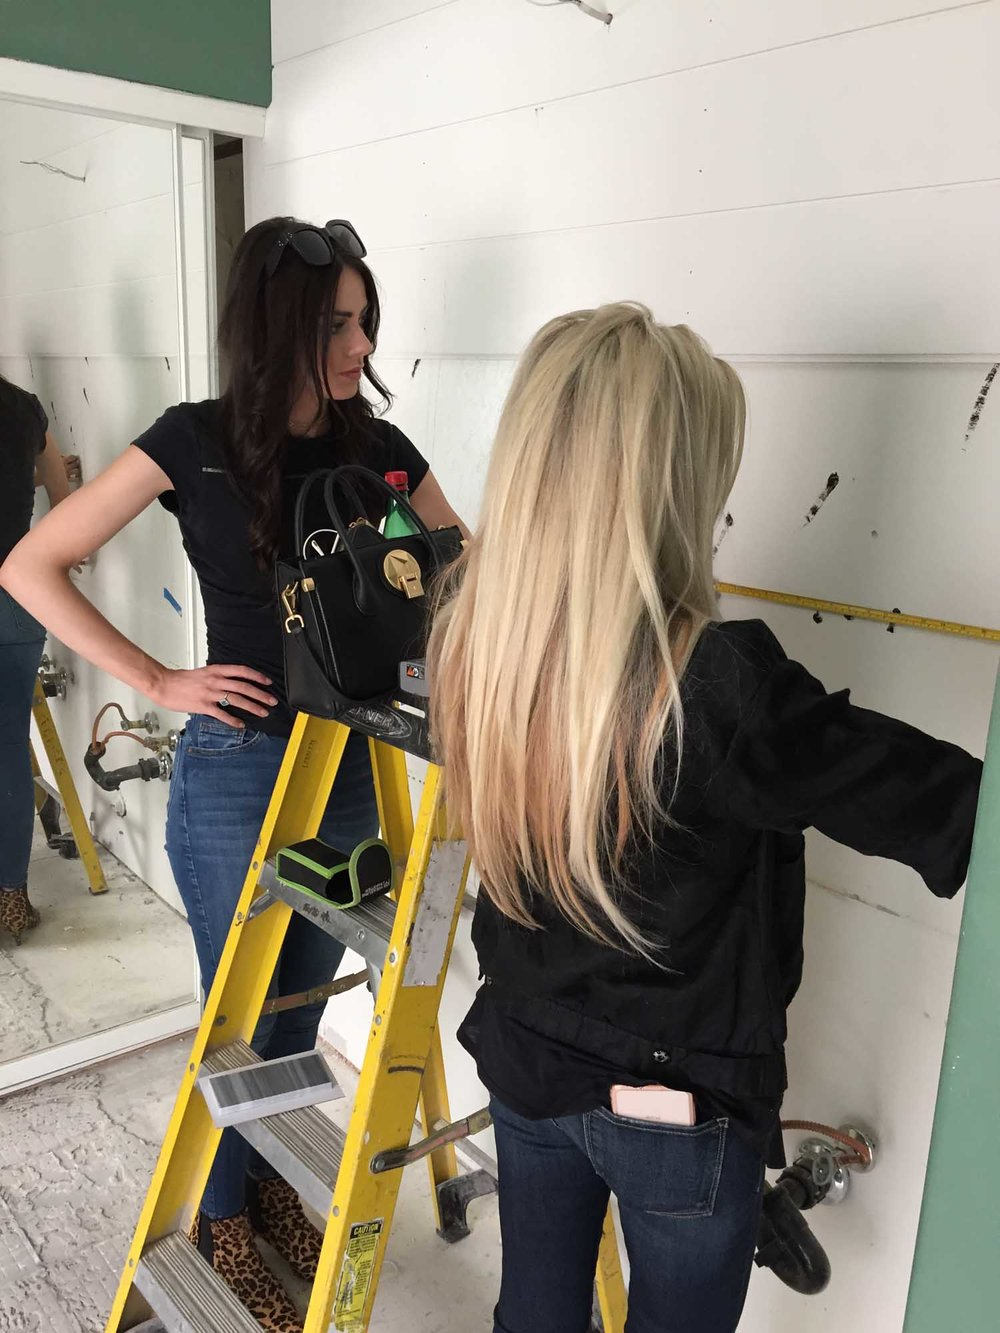 Two women working together in room renovation